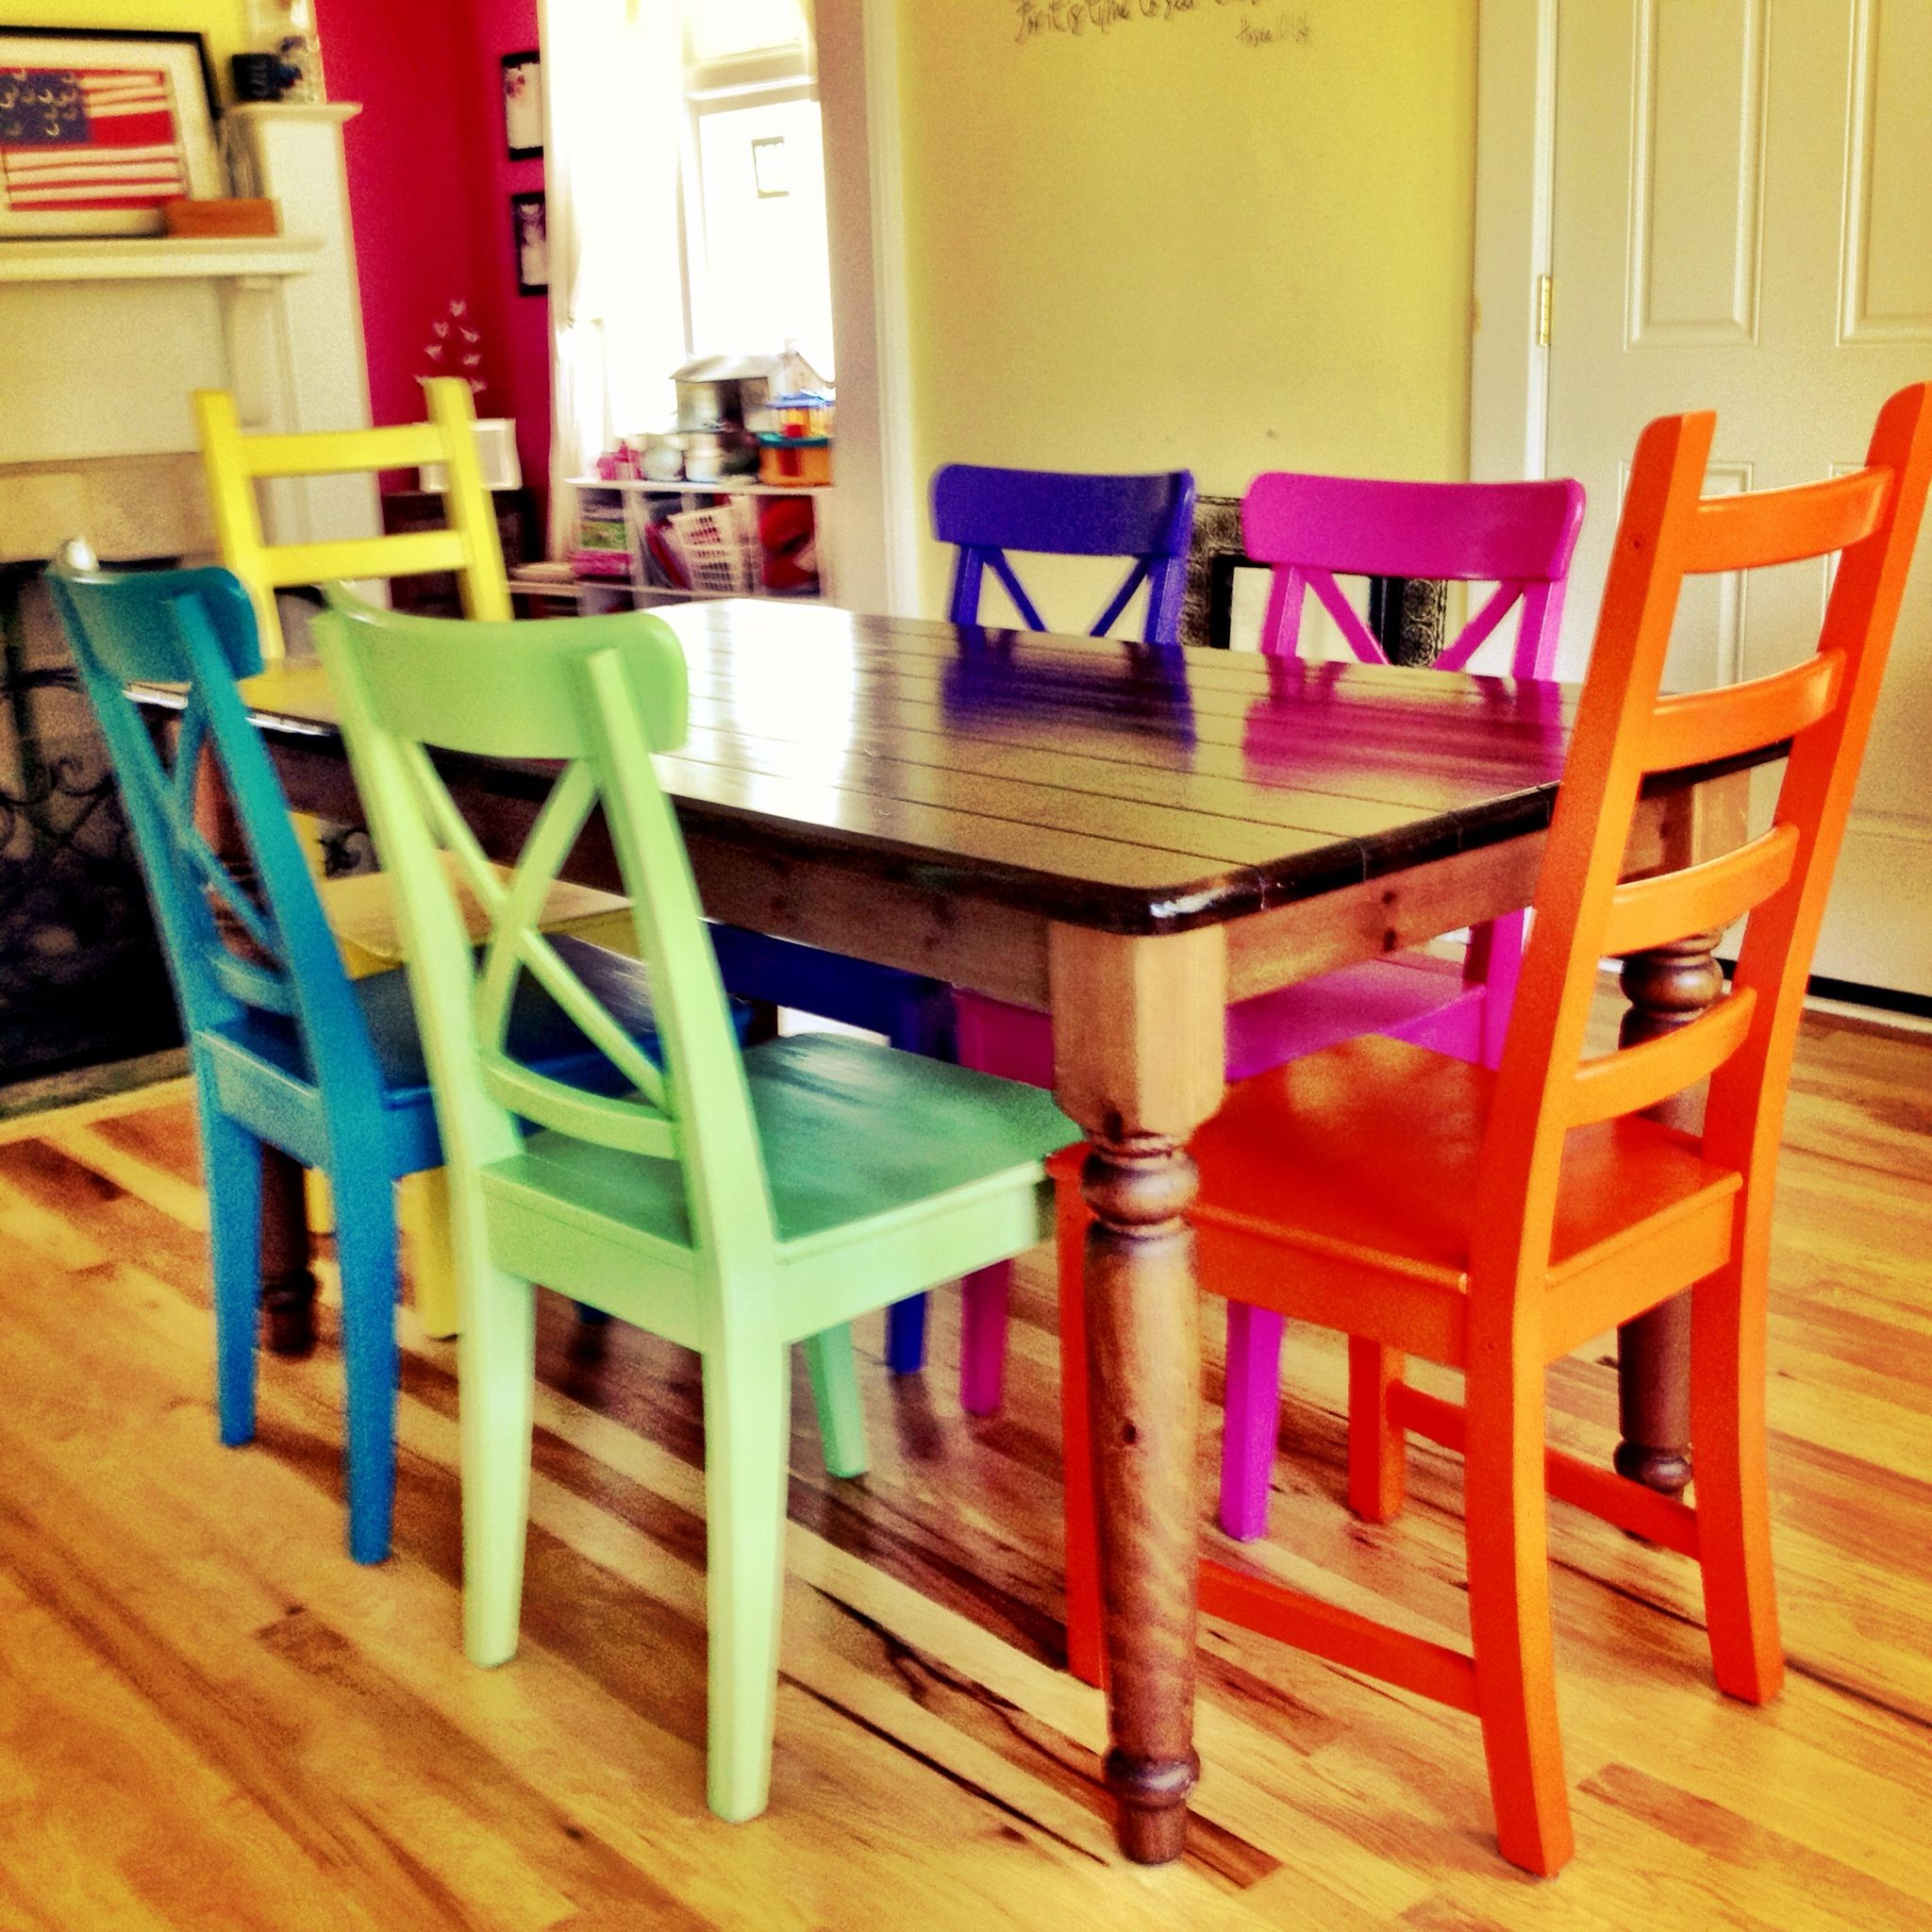 kitchen dining chairs Rustoleum spray painted chairs these remind me of all the colored benches at the